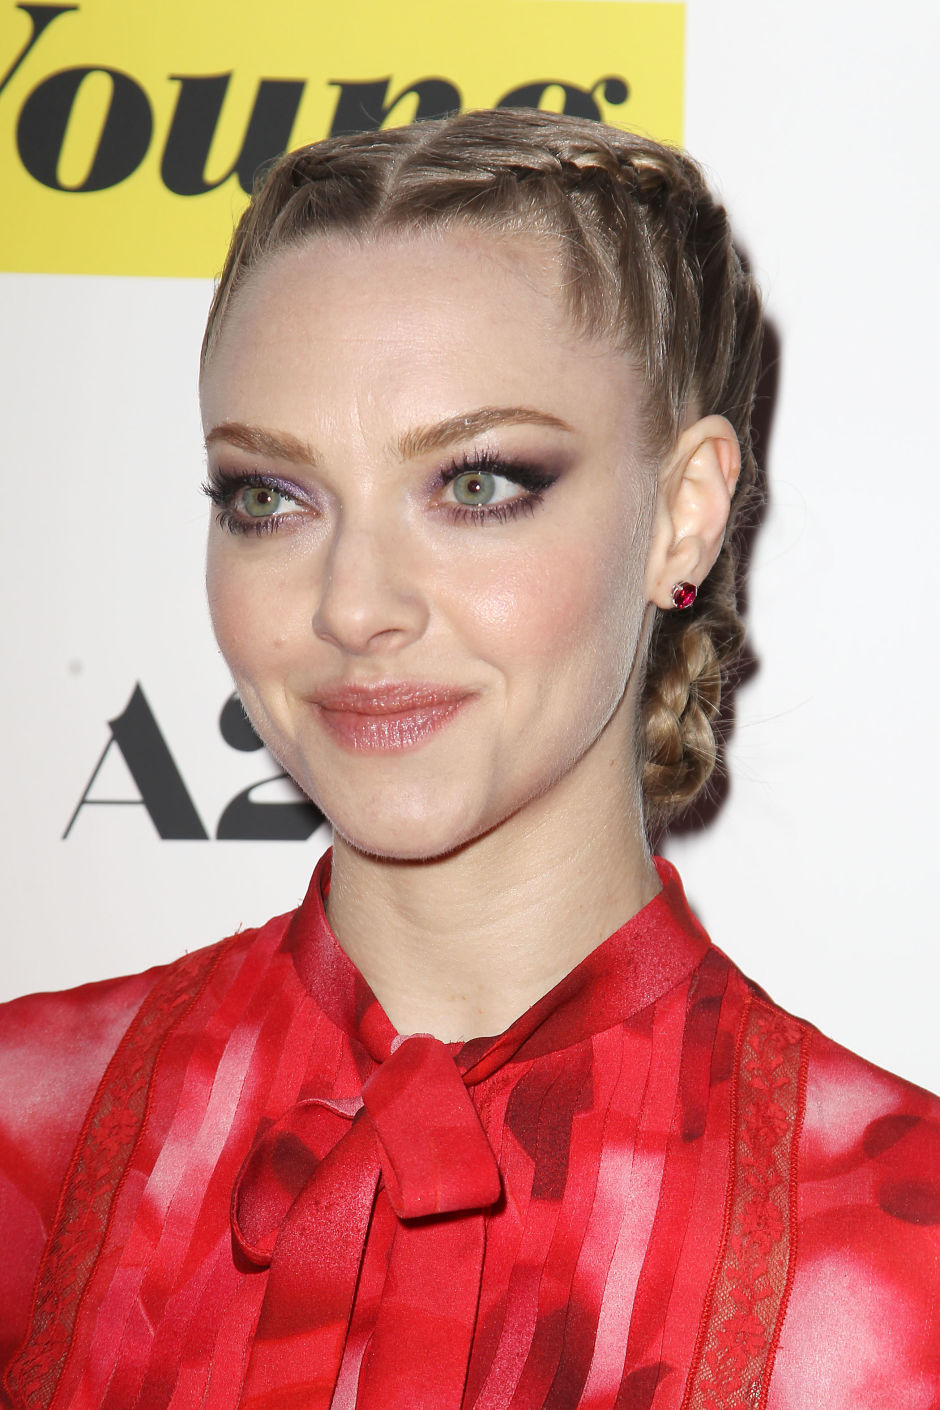 Amanda Seyfried at the 2015 premiere of 'While We're Young'.